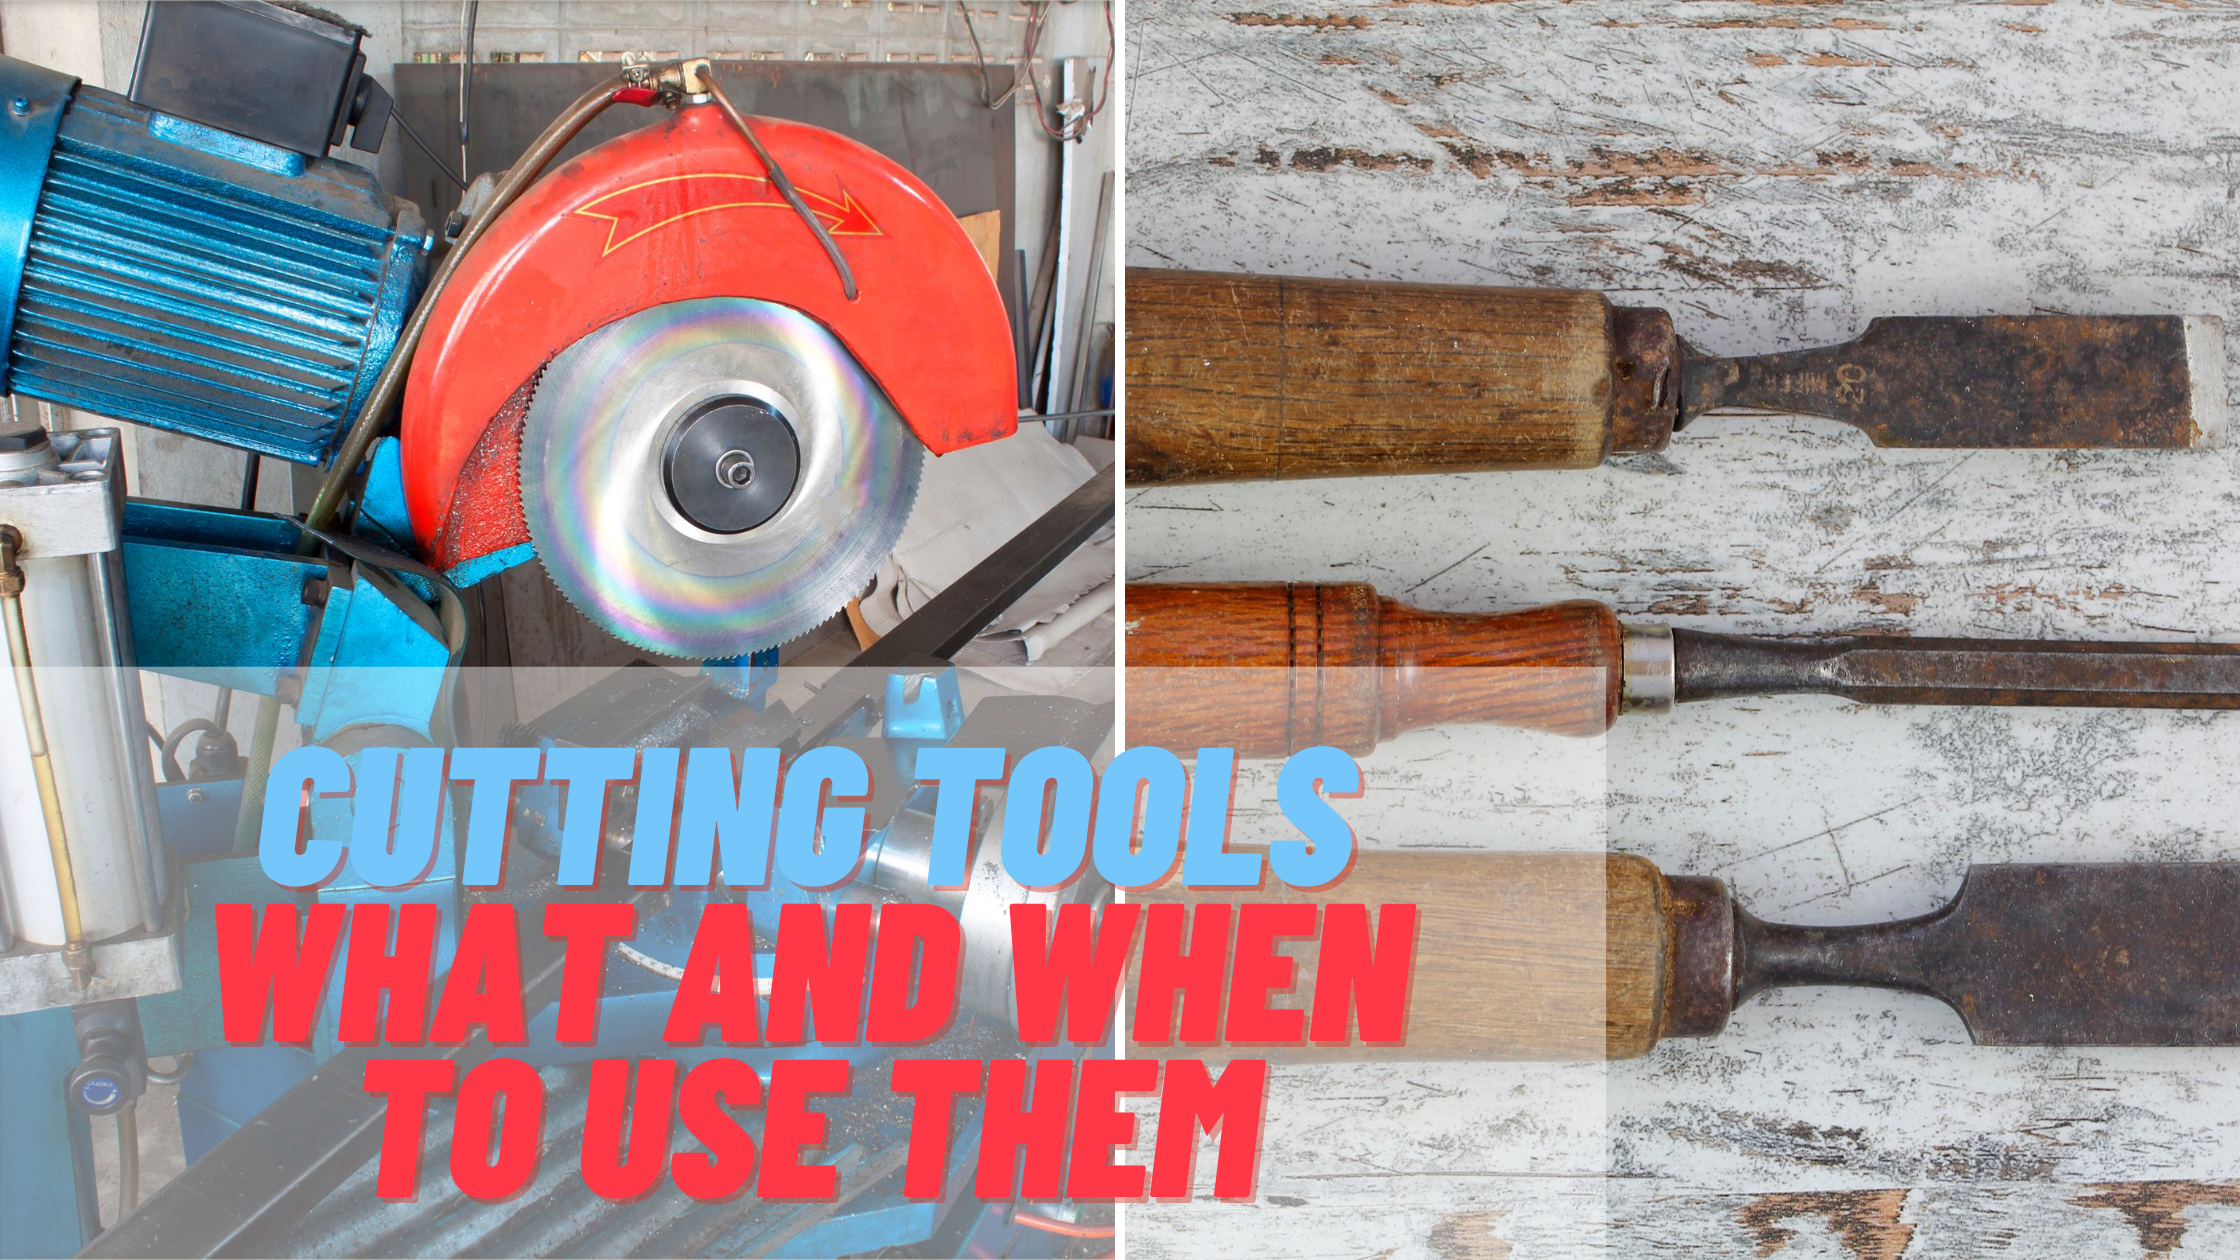 Cutting Tools - What and When To Use Them